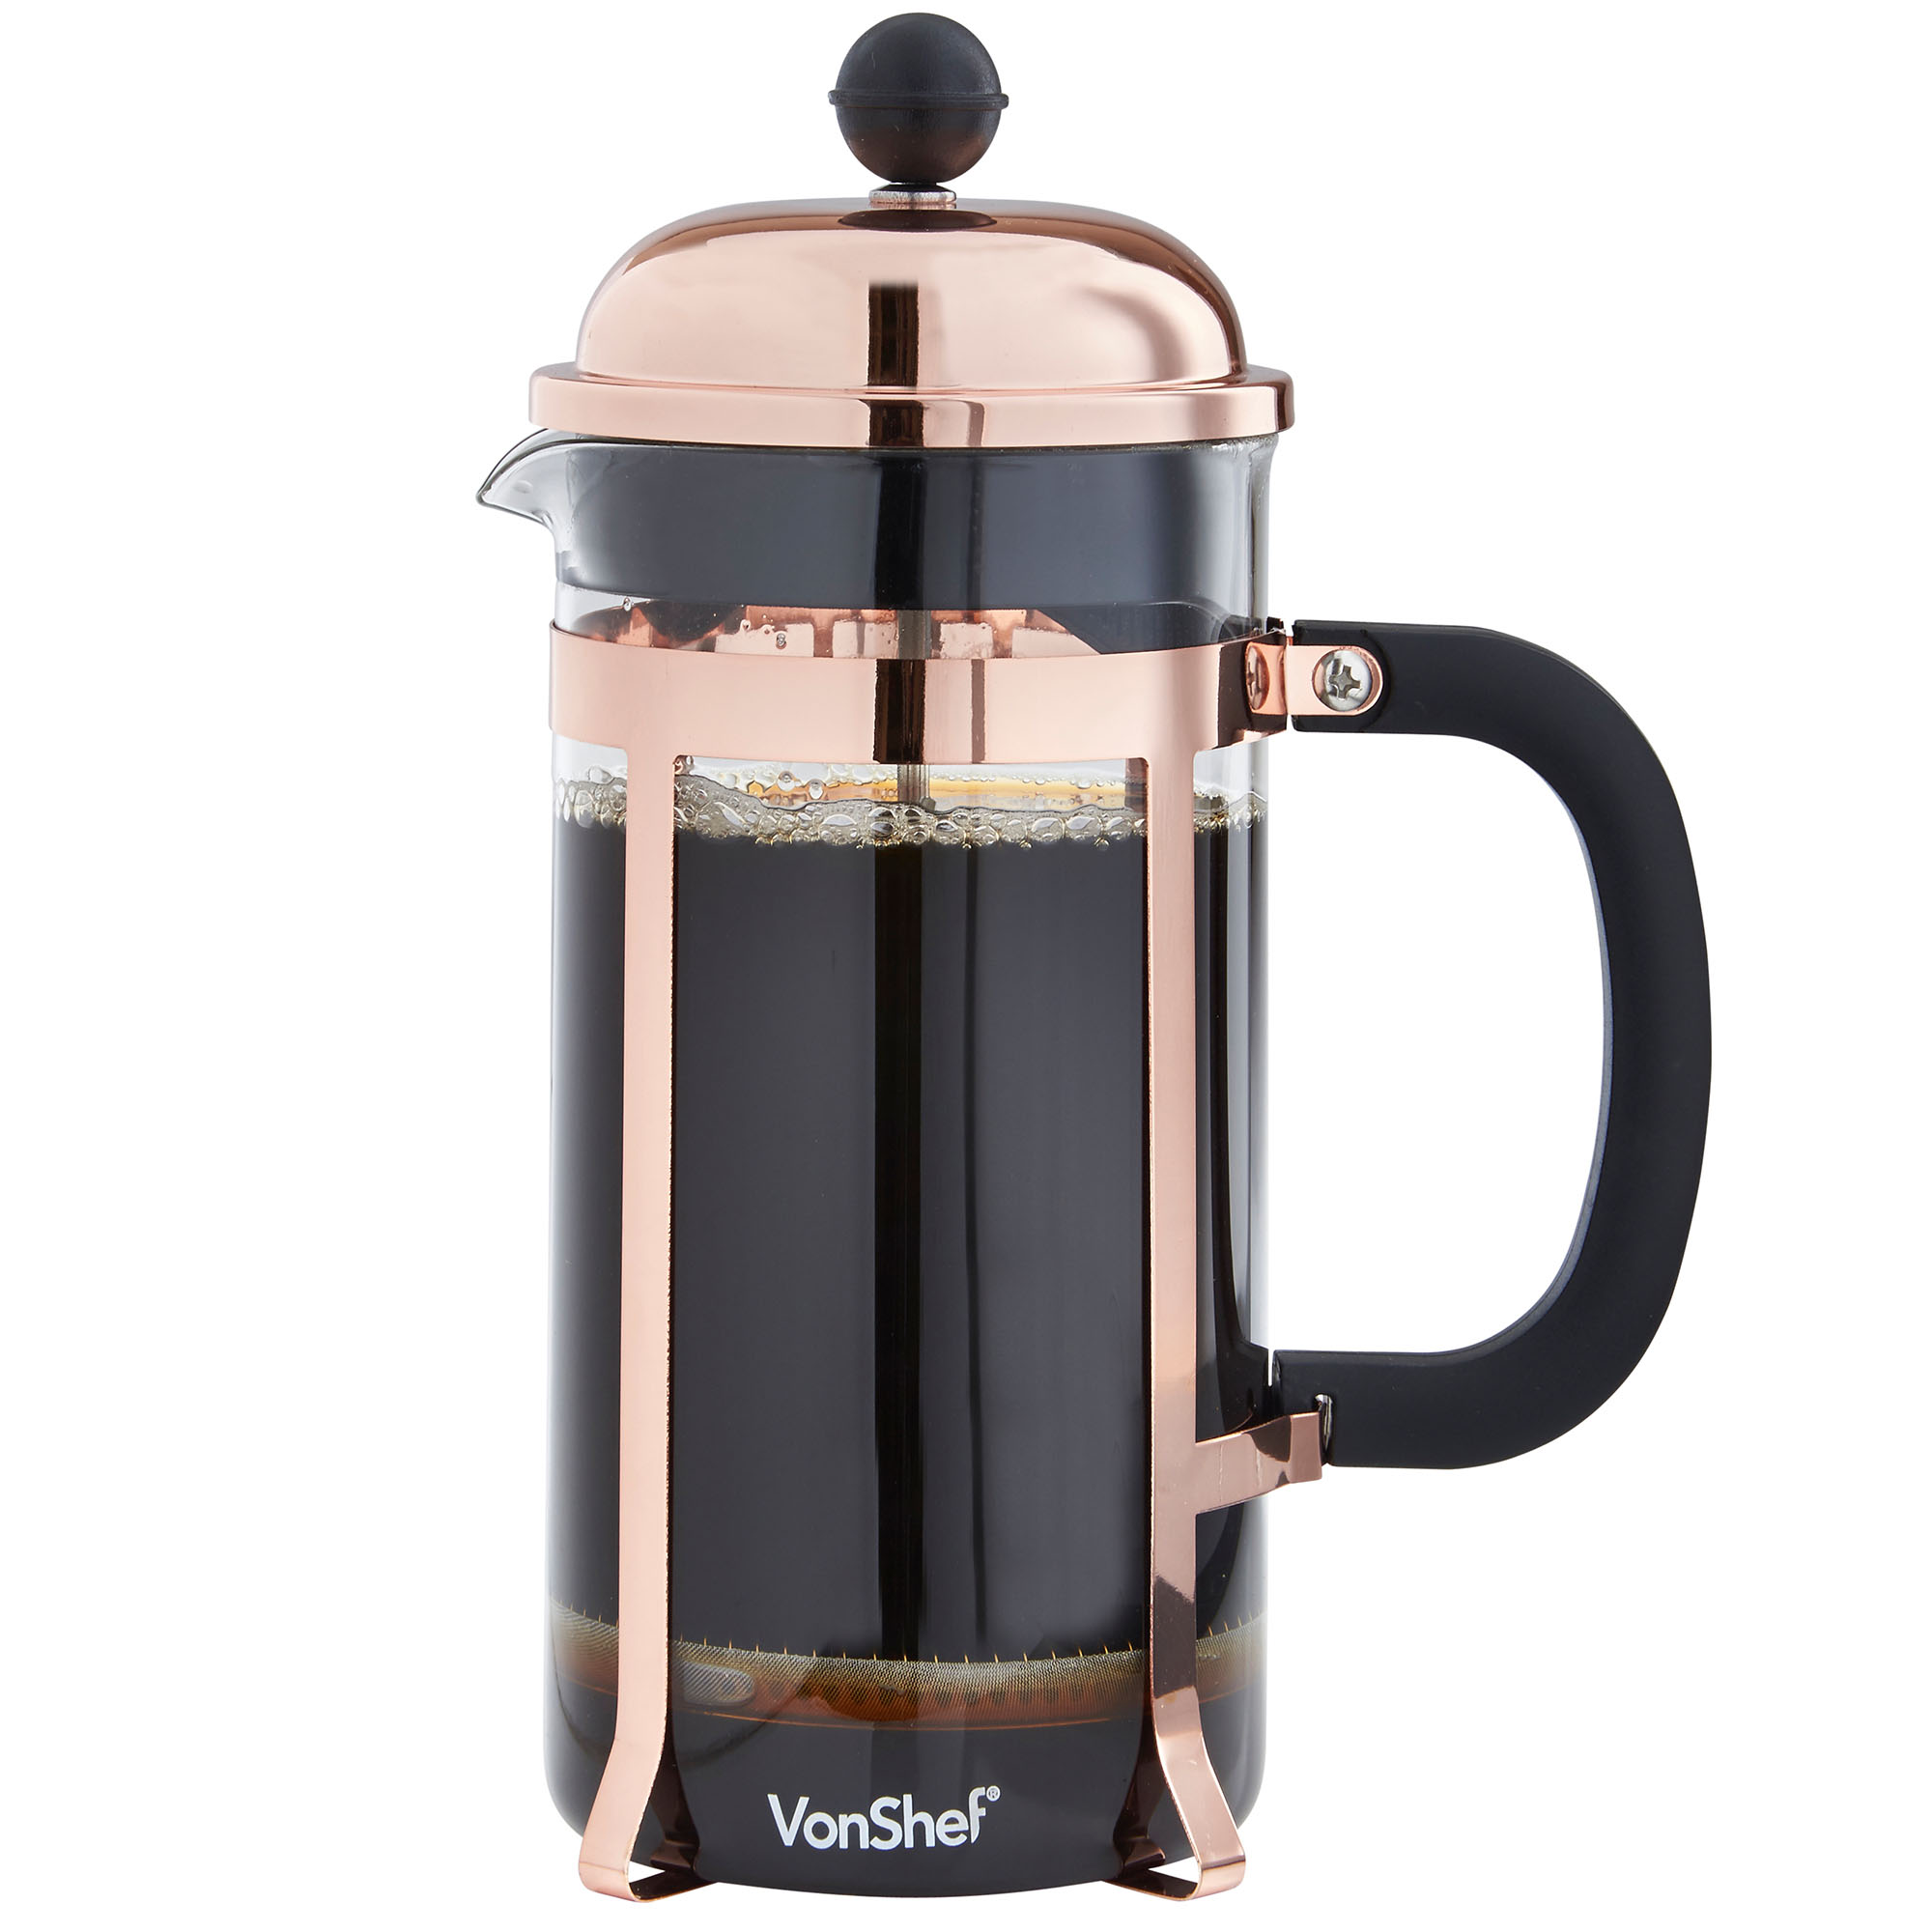 vonshef 8 cup 1 litre copper finish french press cafetiere filter coffee maker. Black Bedroom Furniture Sets. Home Design Ideas